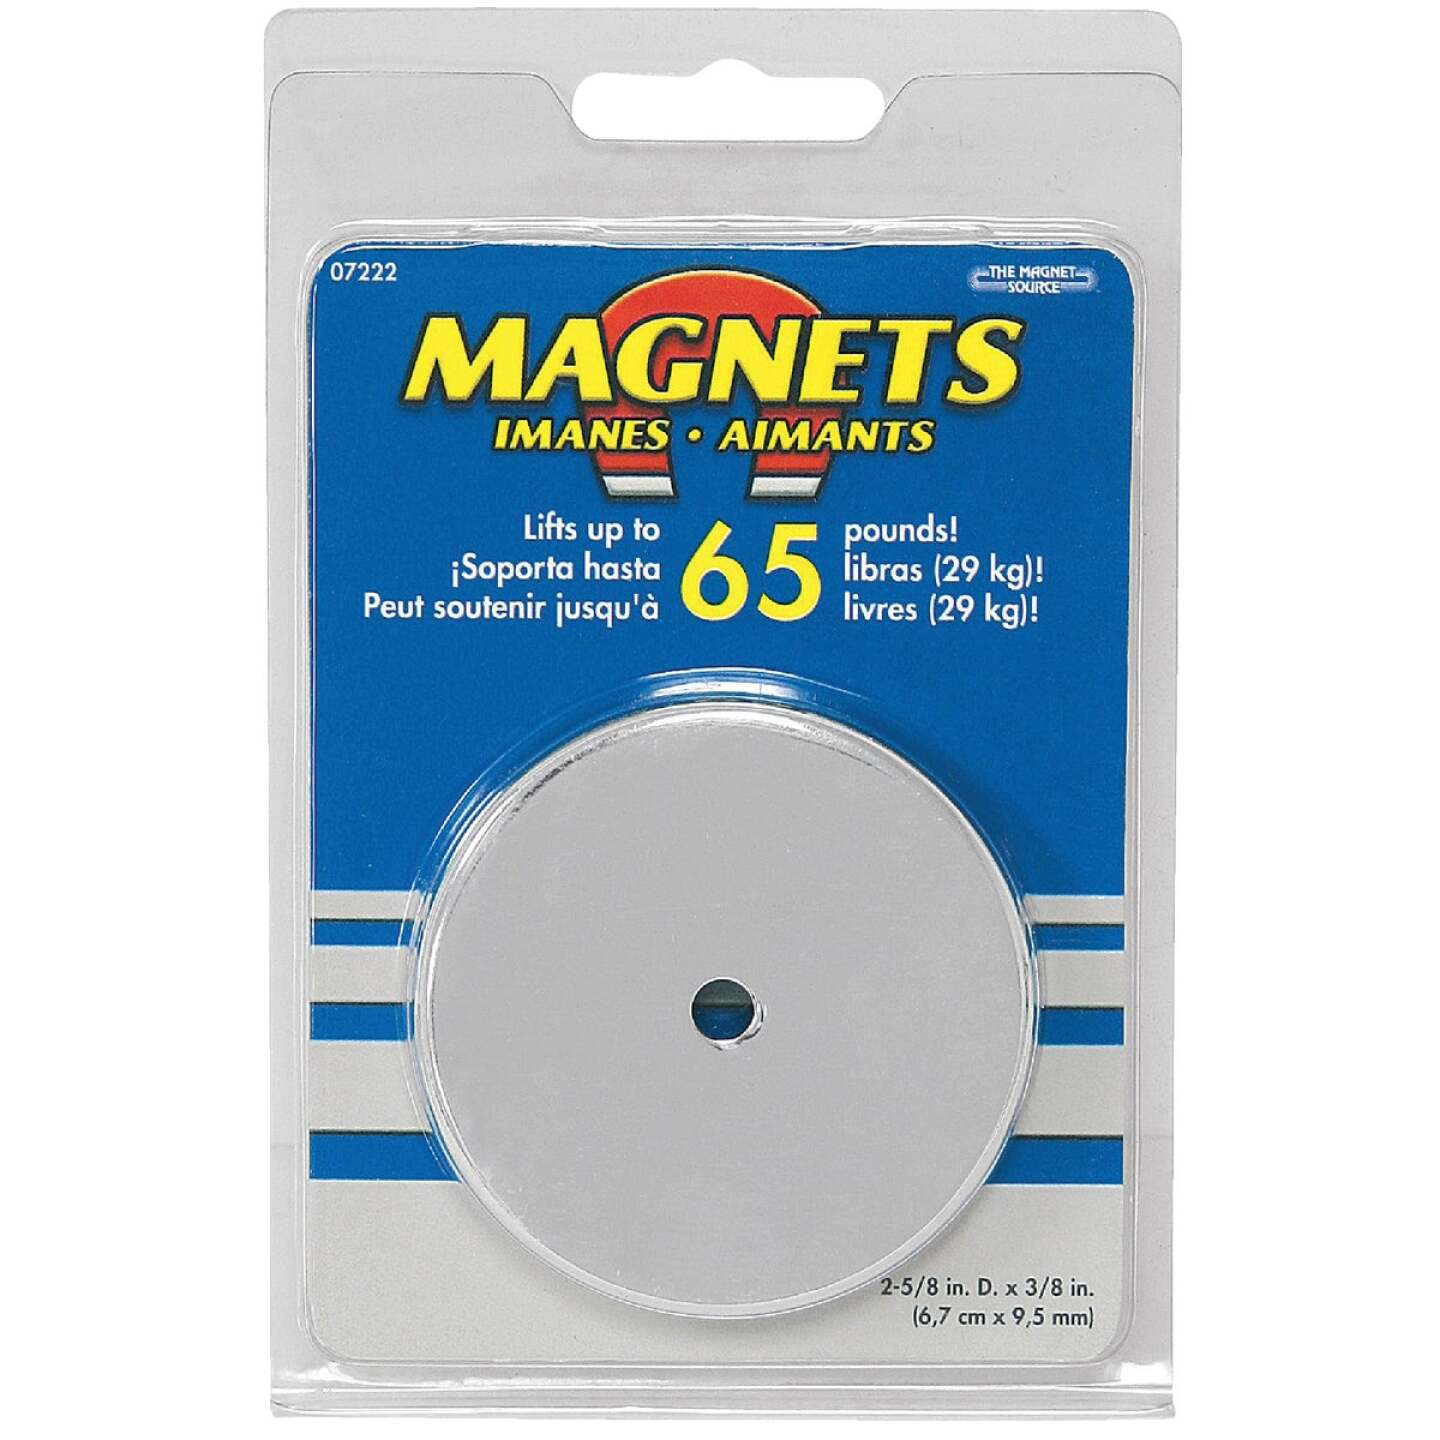 Master Magnetics 2-5/8 in. 65 Lb. Magnetic Base Image 2